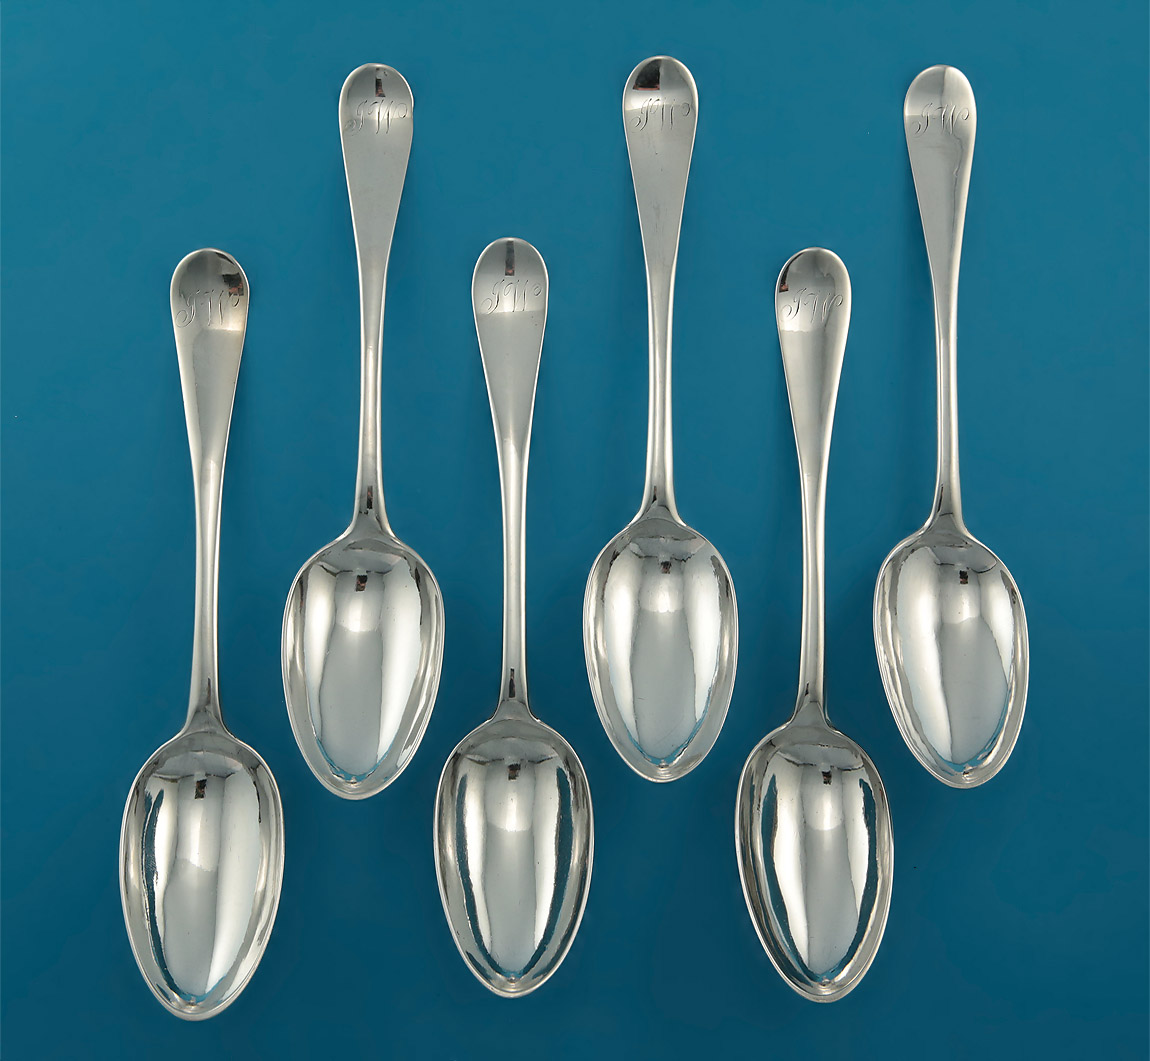 Set of 6 George III Scottish Hanoverian Silver TABLE Spoons, IT over FH (Howden & Taylor), Edinburgh, 1782